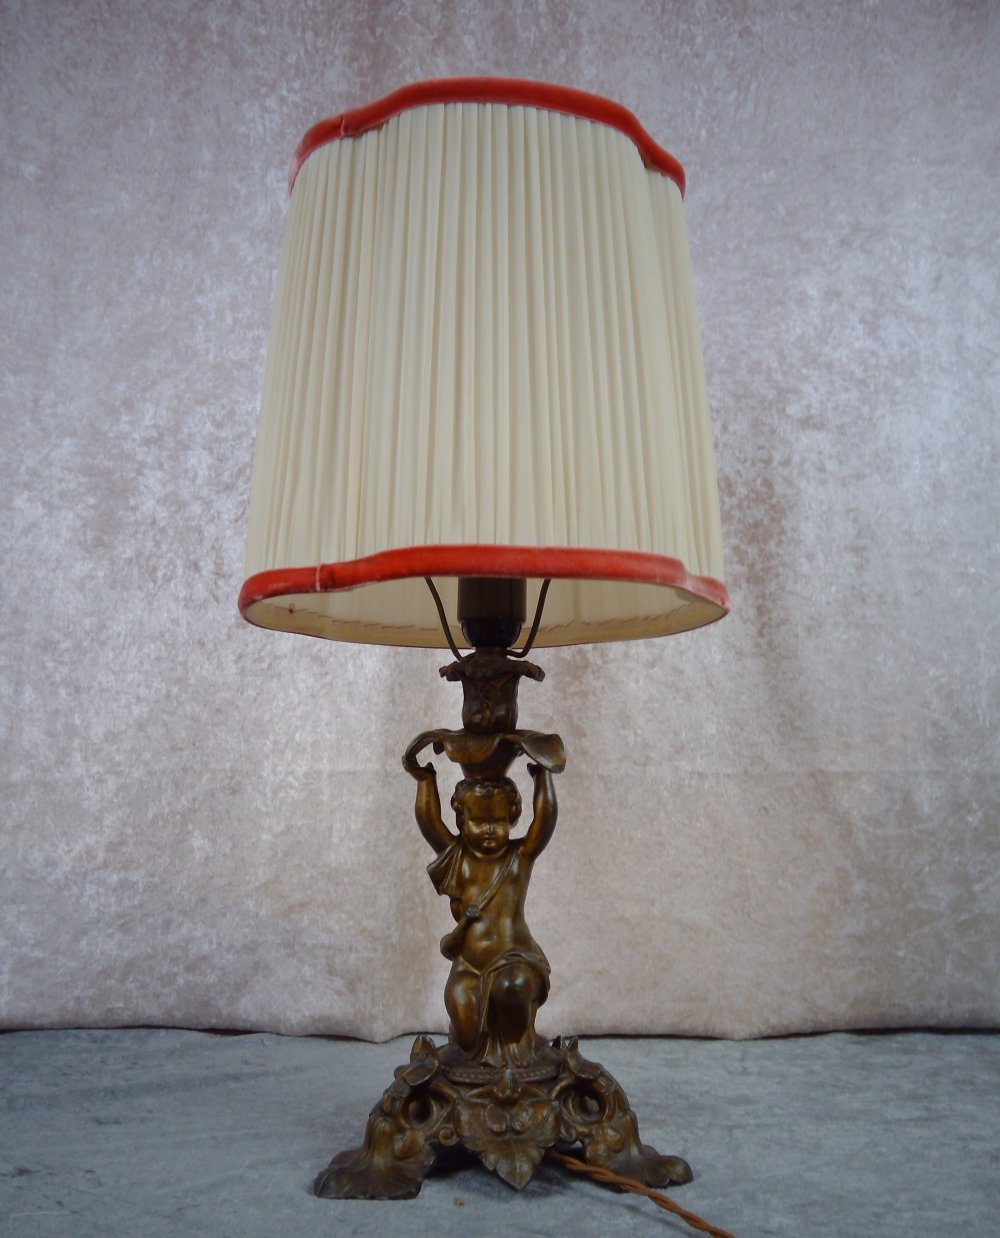 Midcentury cast iron Puti lamp, Sweden 1940s